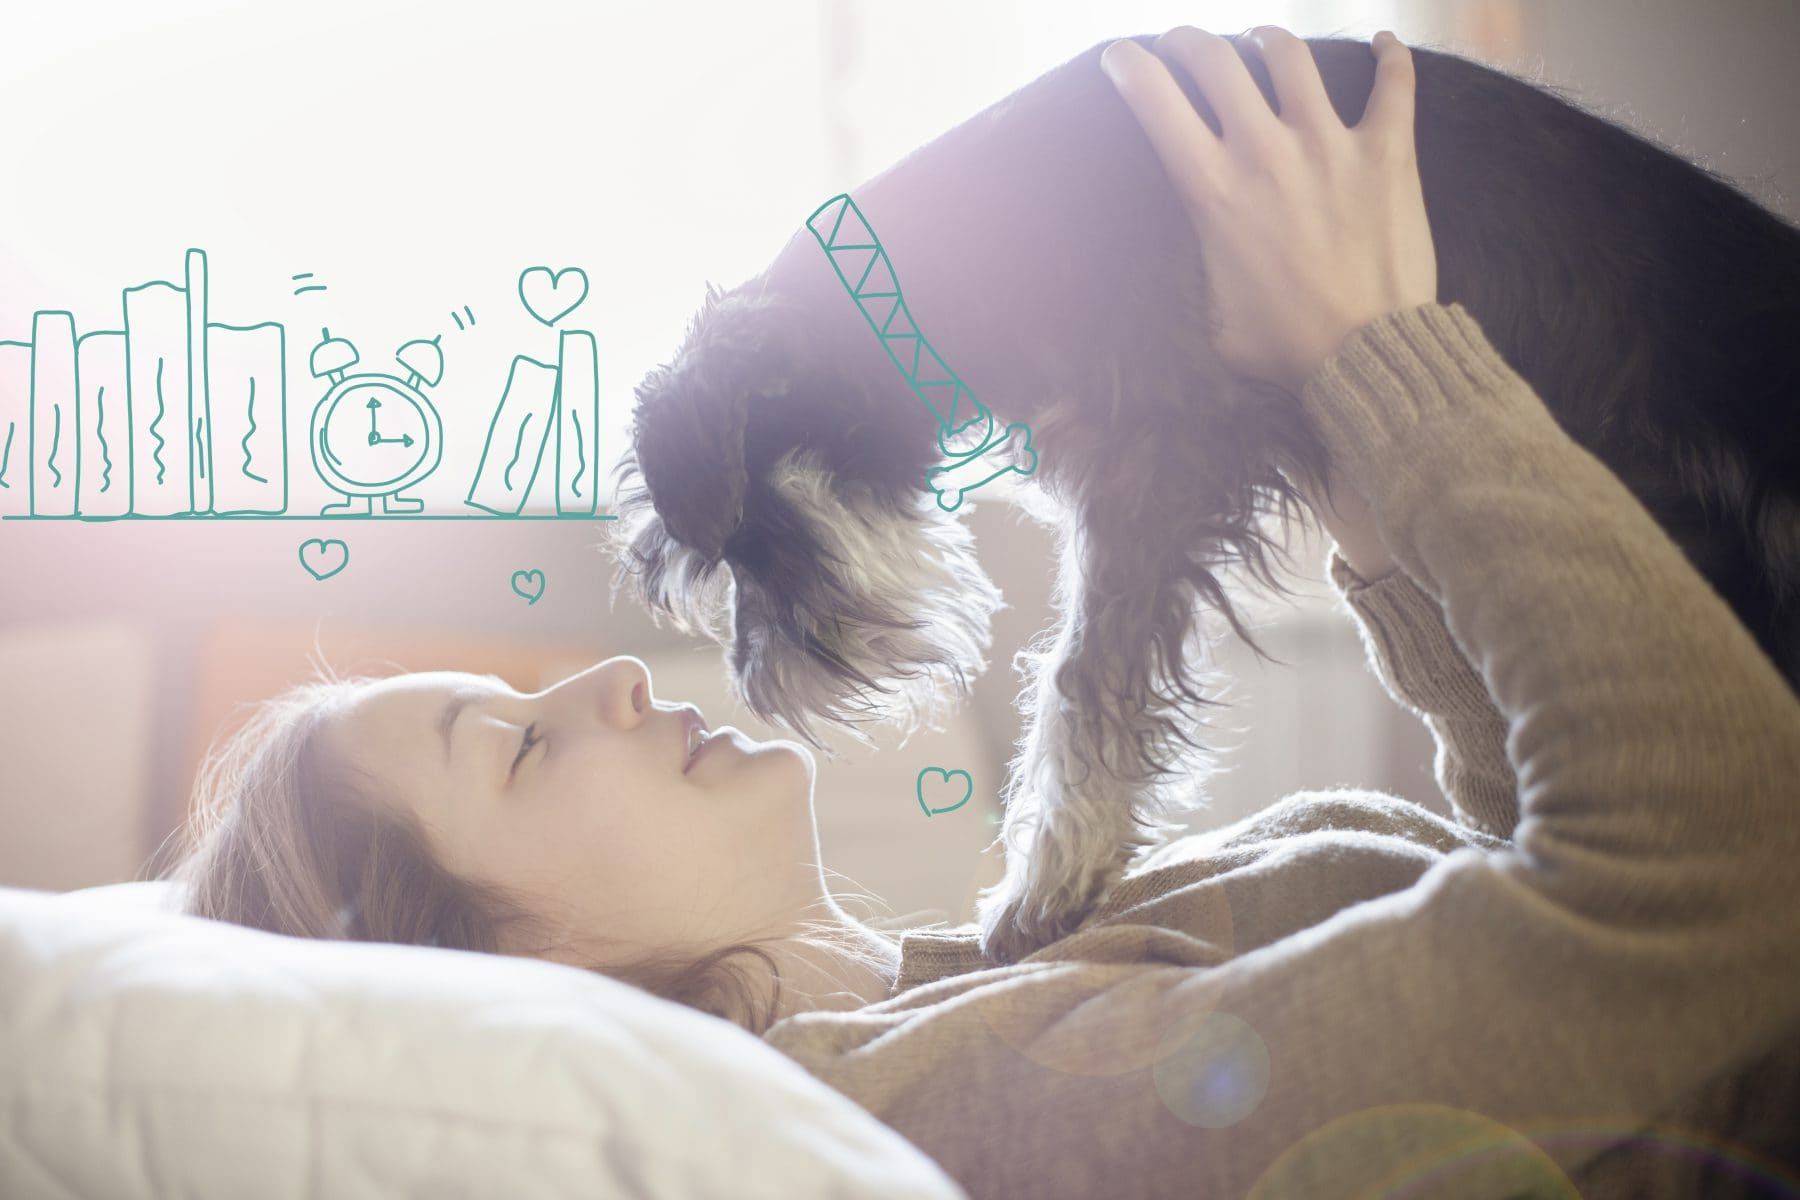 Doga - yoga with dogs. A lady cuddles her dog.